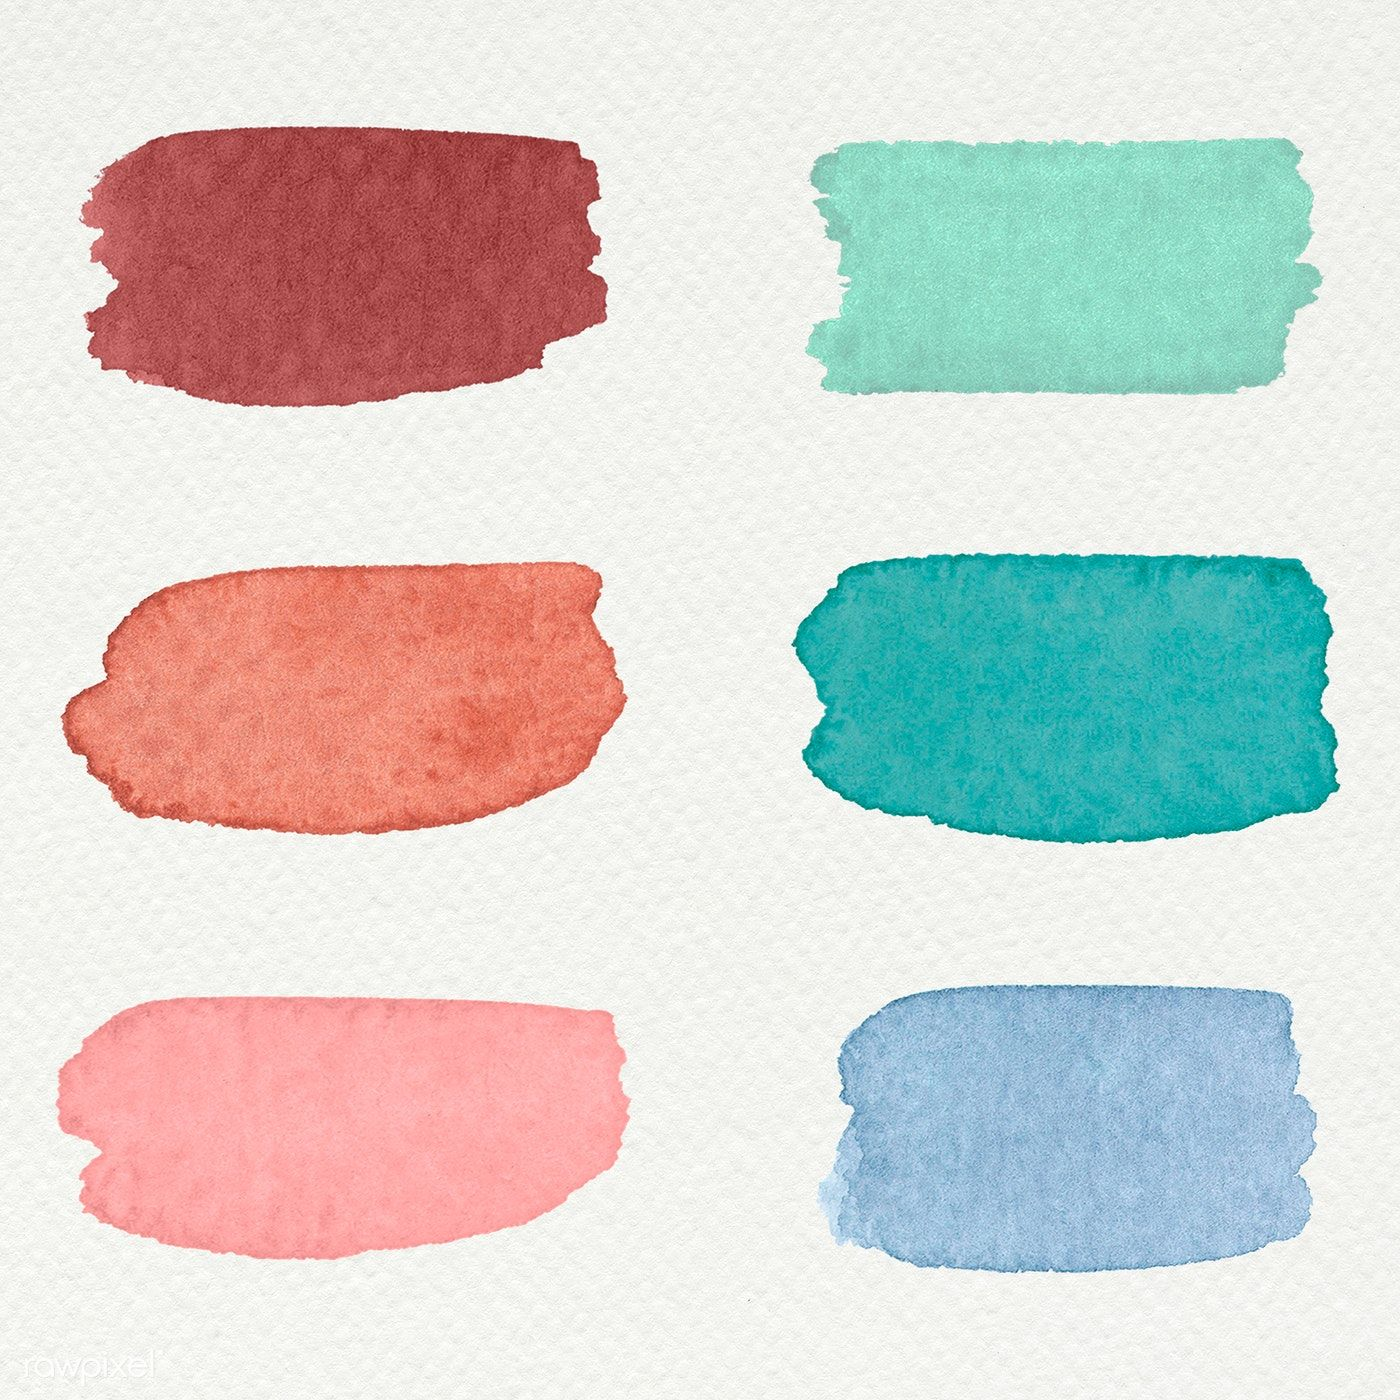 Download Abstract Watercolor Grunge Brush Stroke Set For Free In